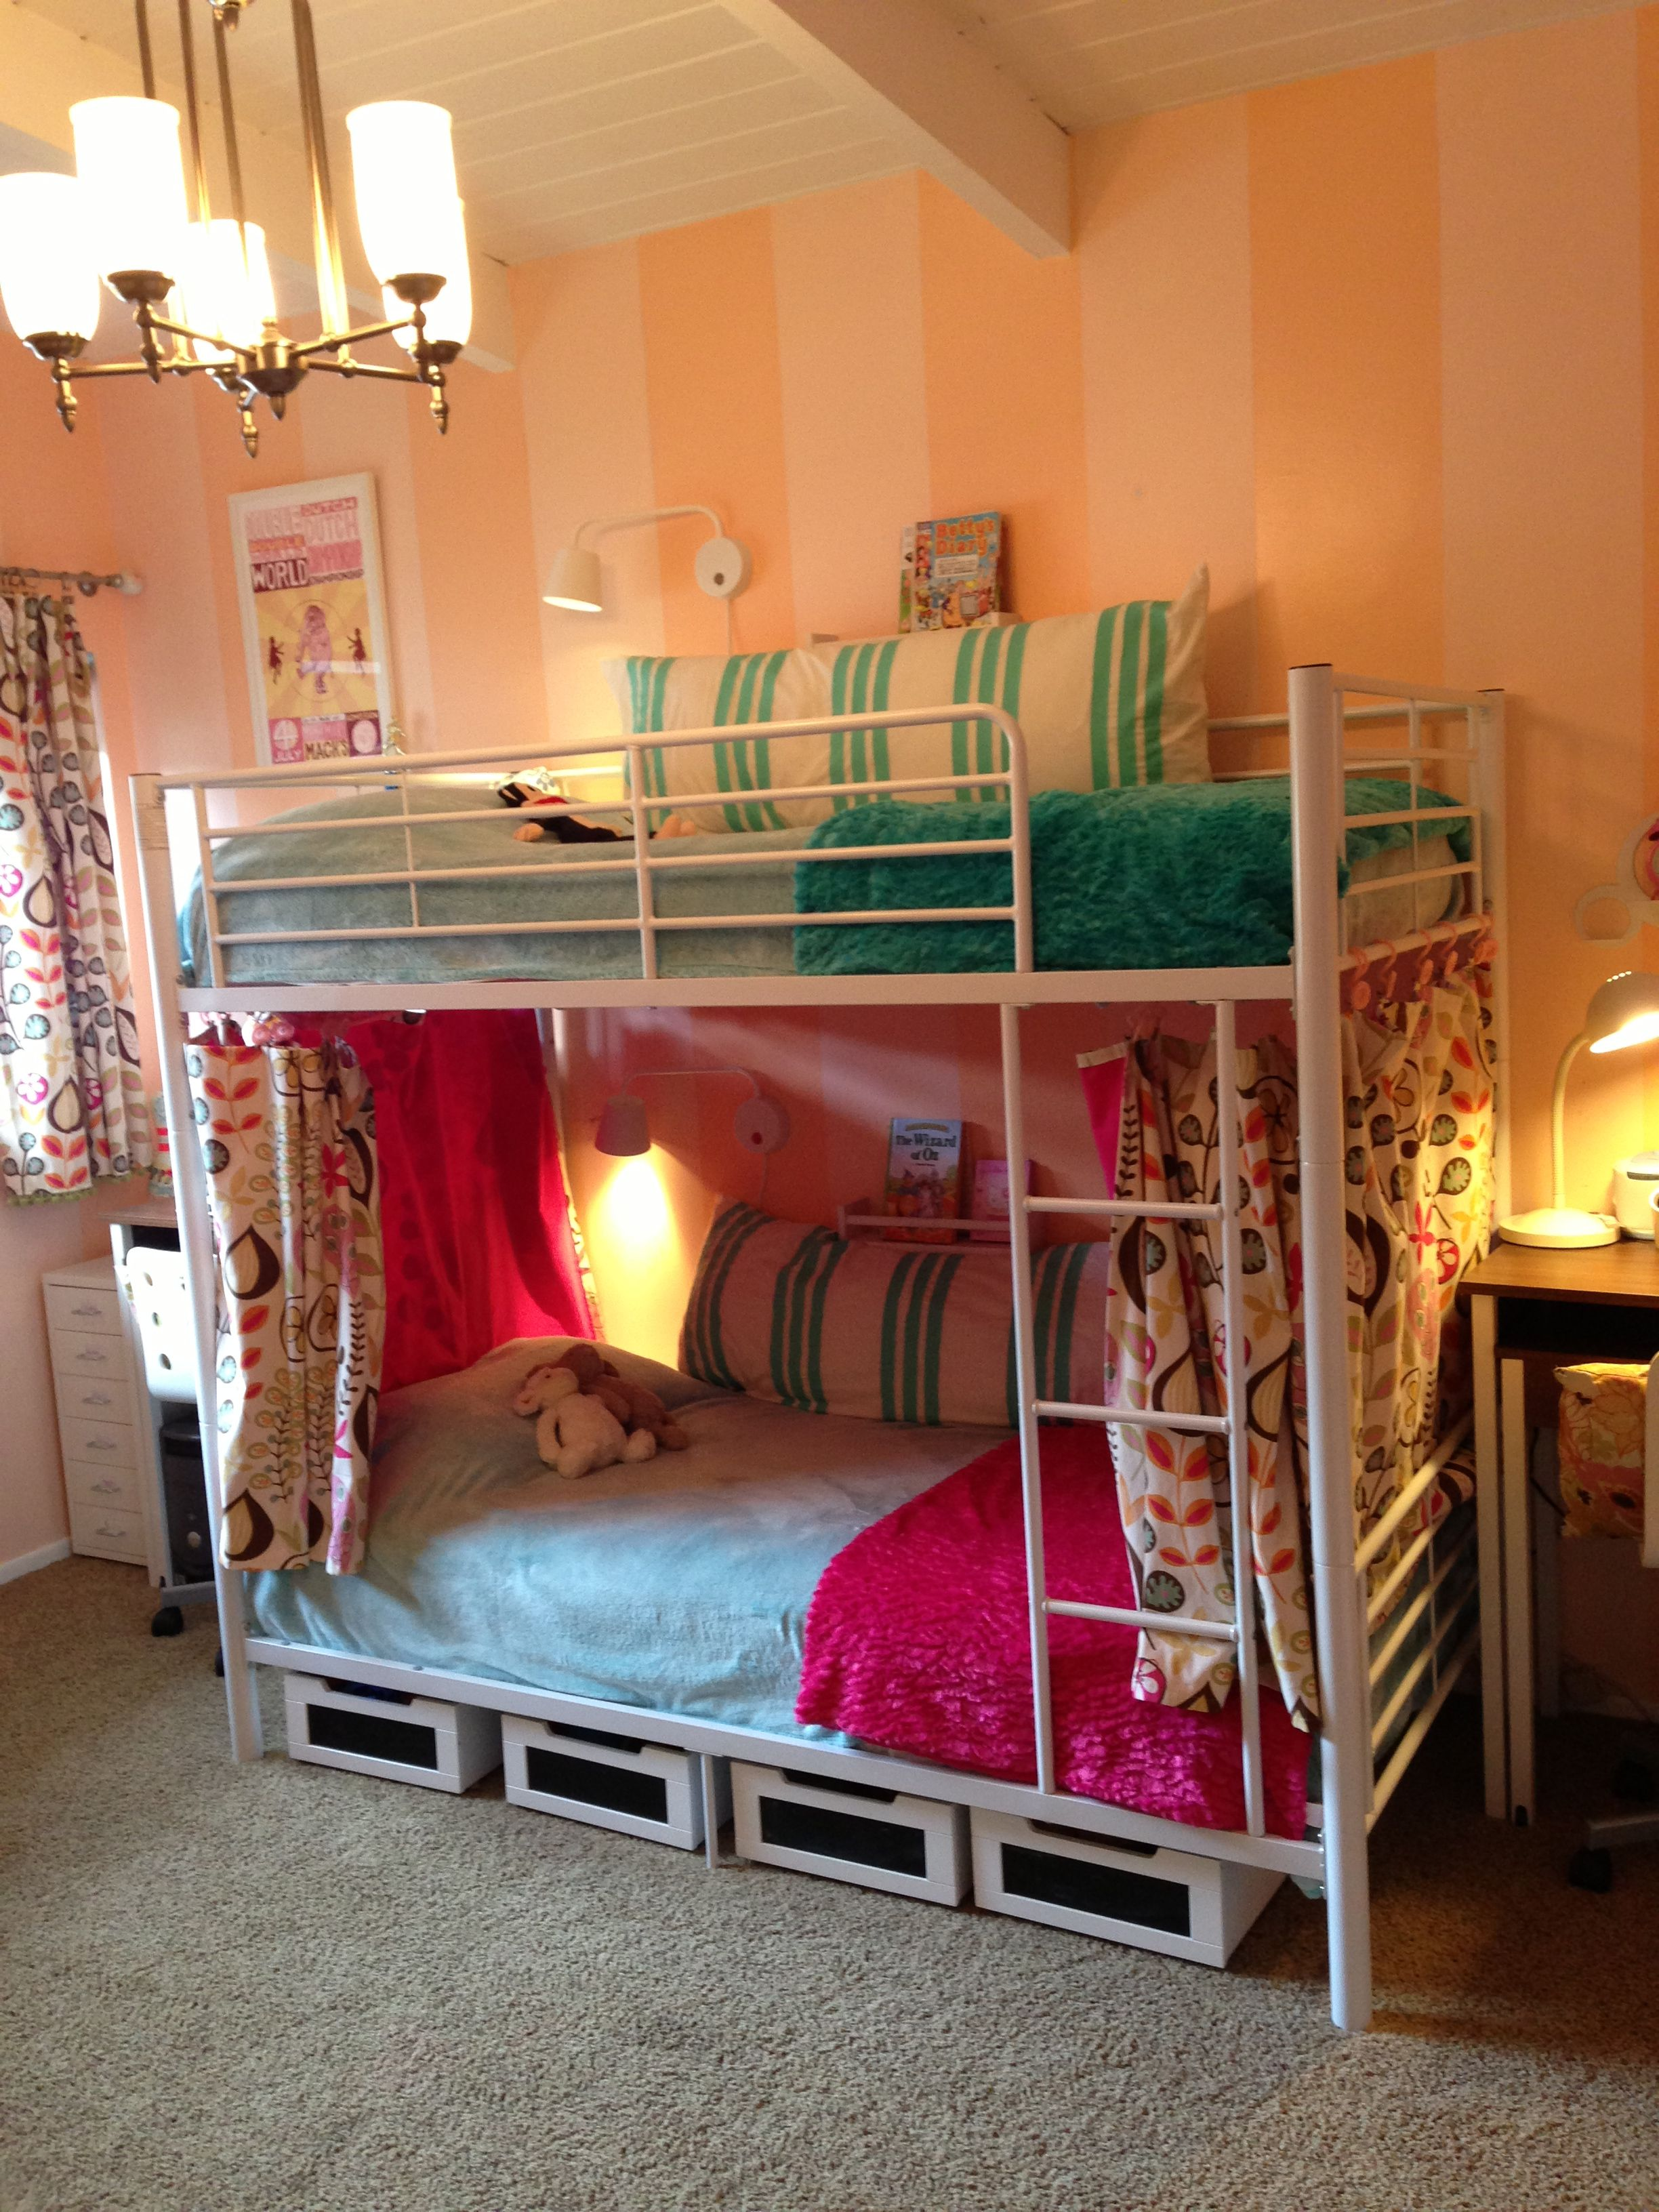 Bunk Beds With Storage Space Inexpensive White Metal Bunkbed Cozied Up With Curtains